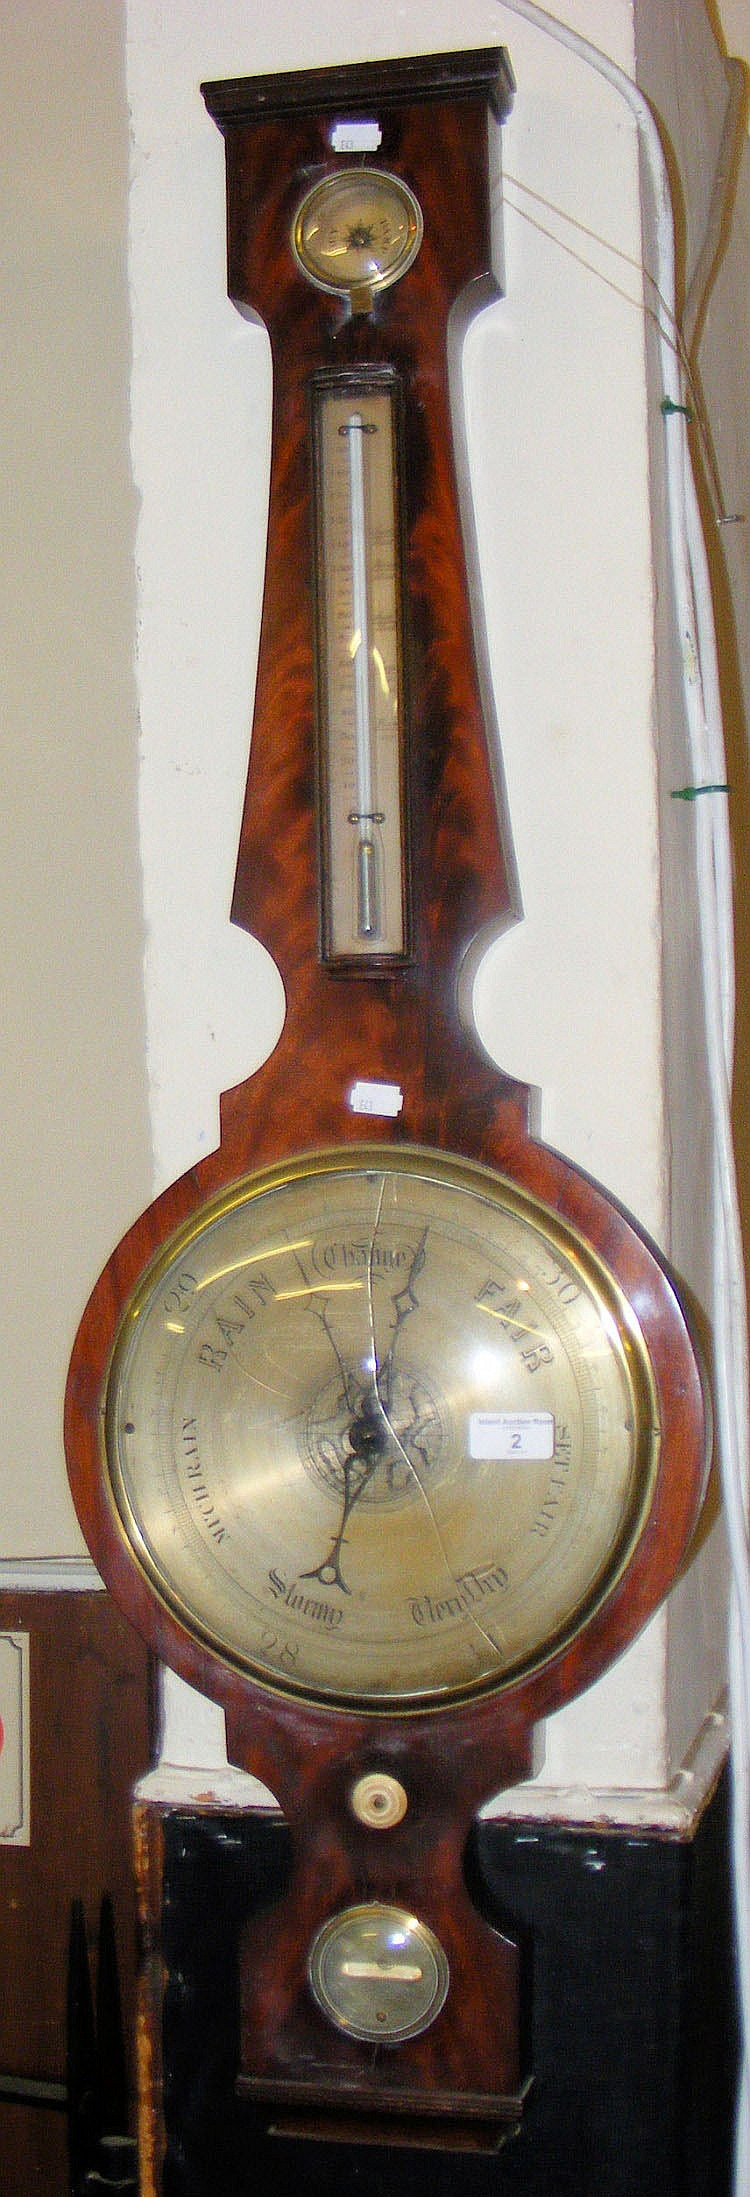 A mahogany cased banjo shaped mercurial